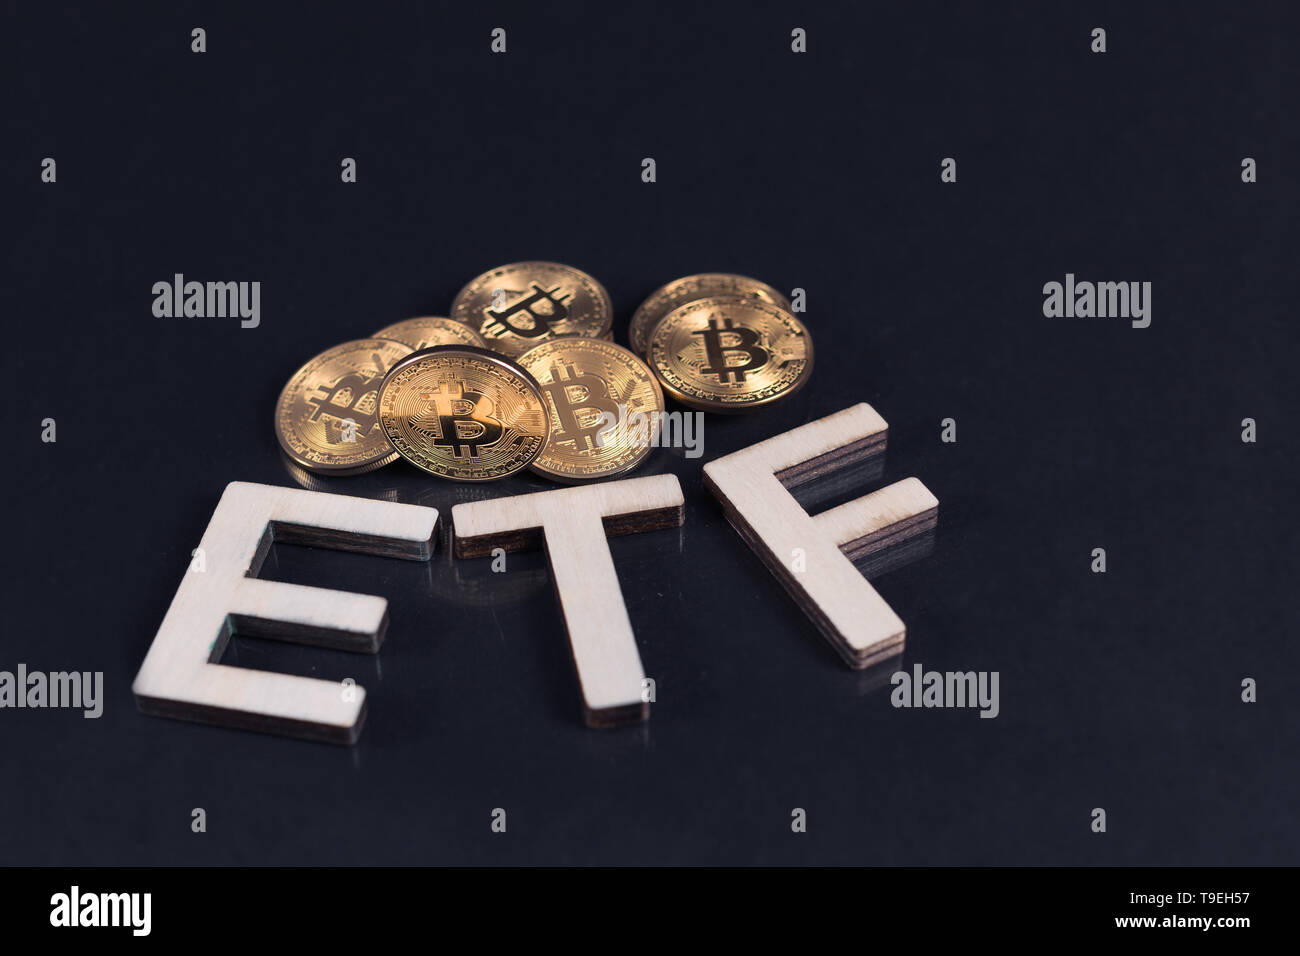 Bitcoin coins with ETF text put on dark background, Concept of the approval of Exchange Traded Fund. Stock Photo